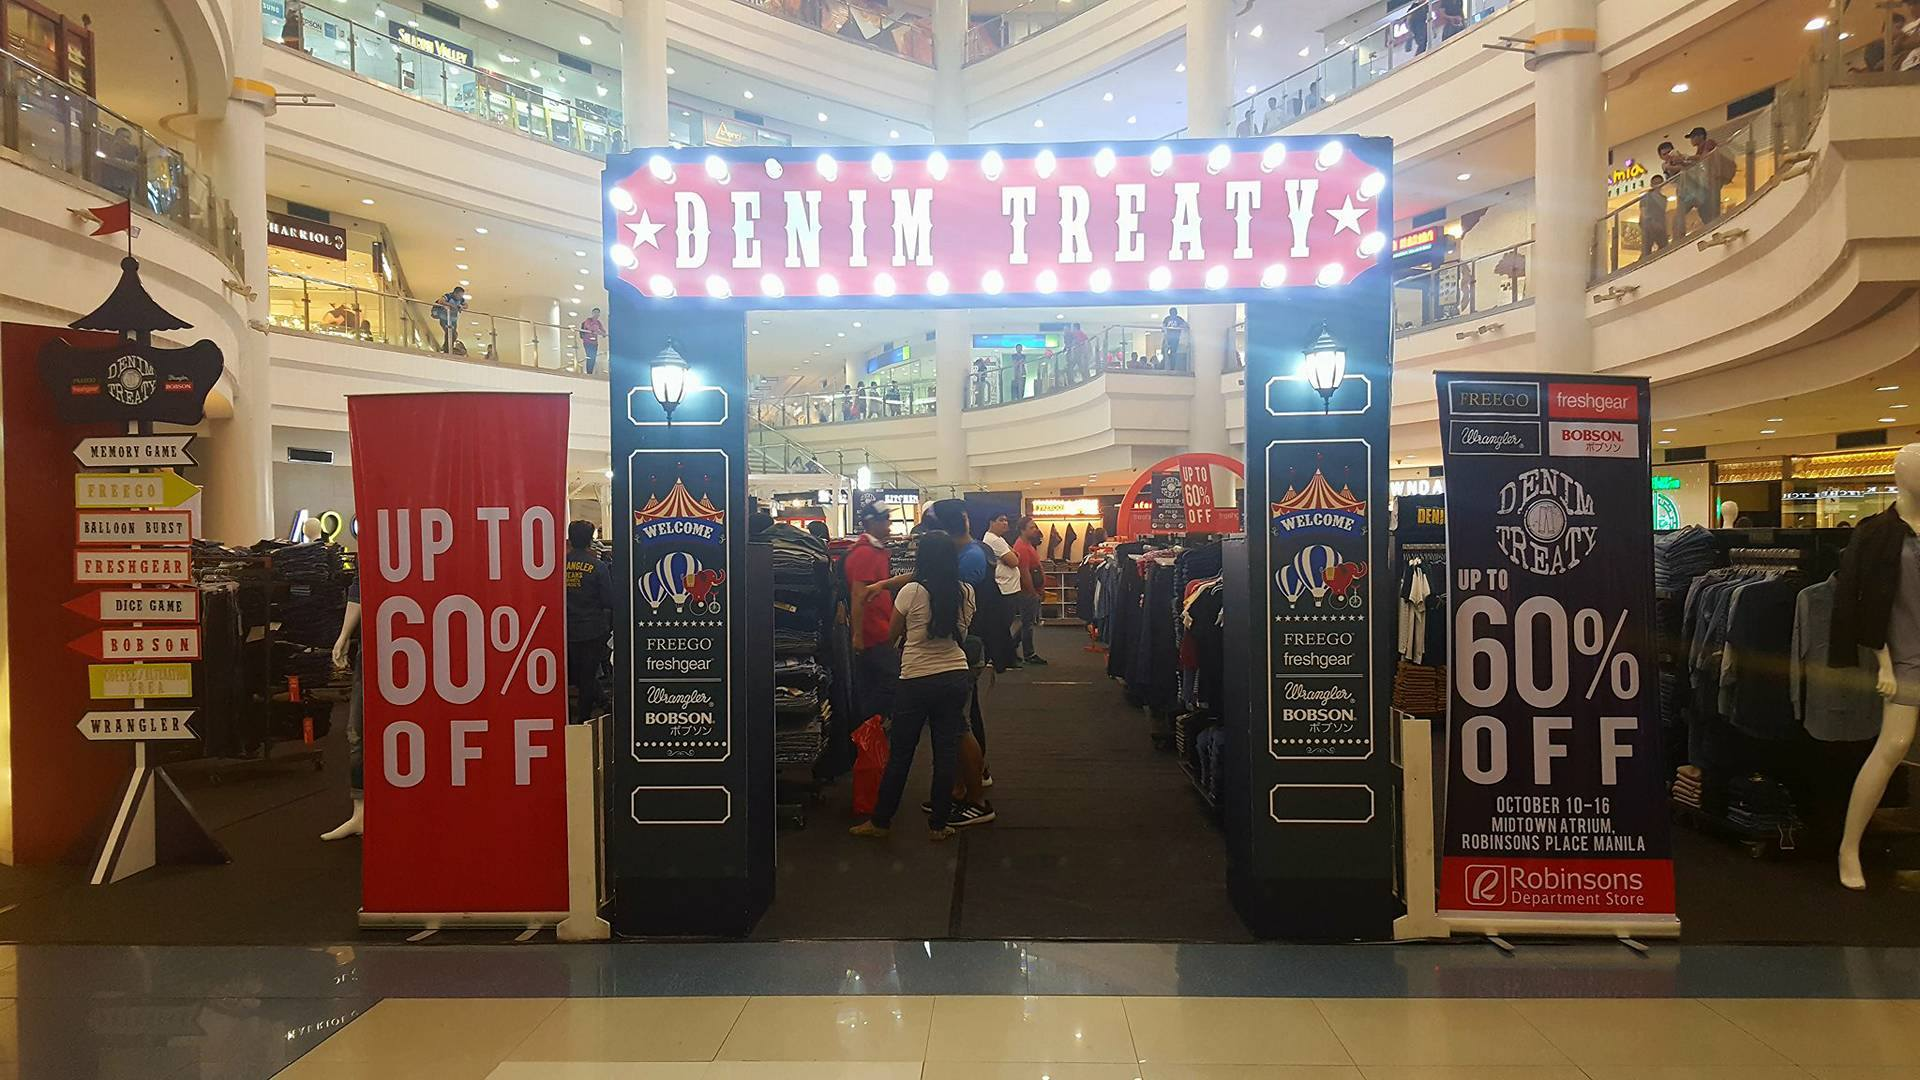 A must-check out fair for denim lovers